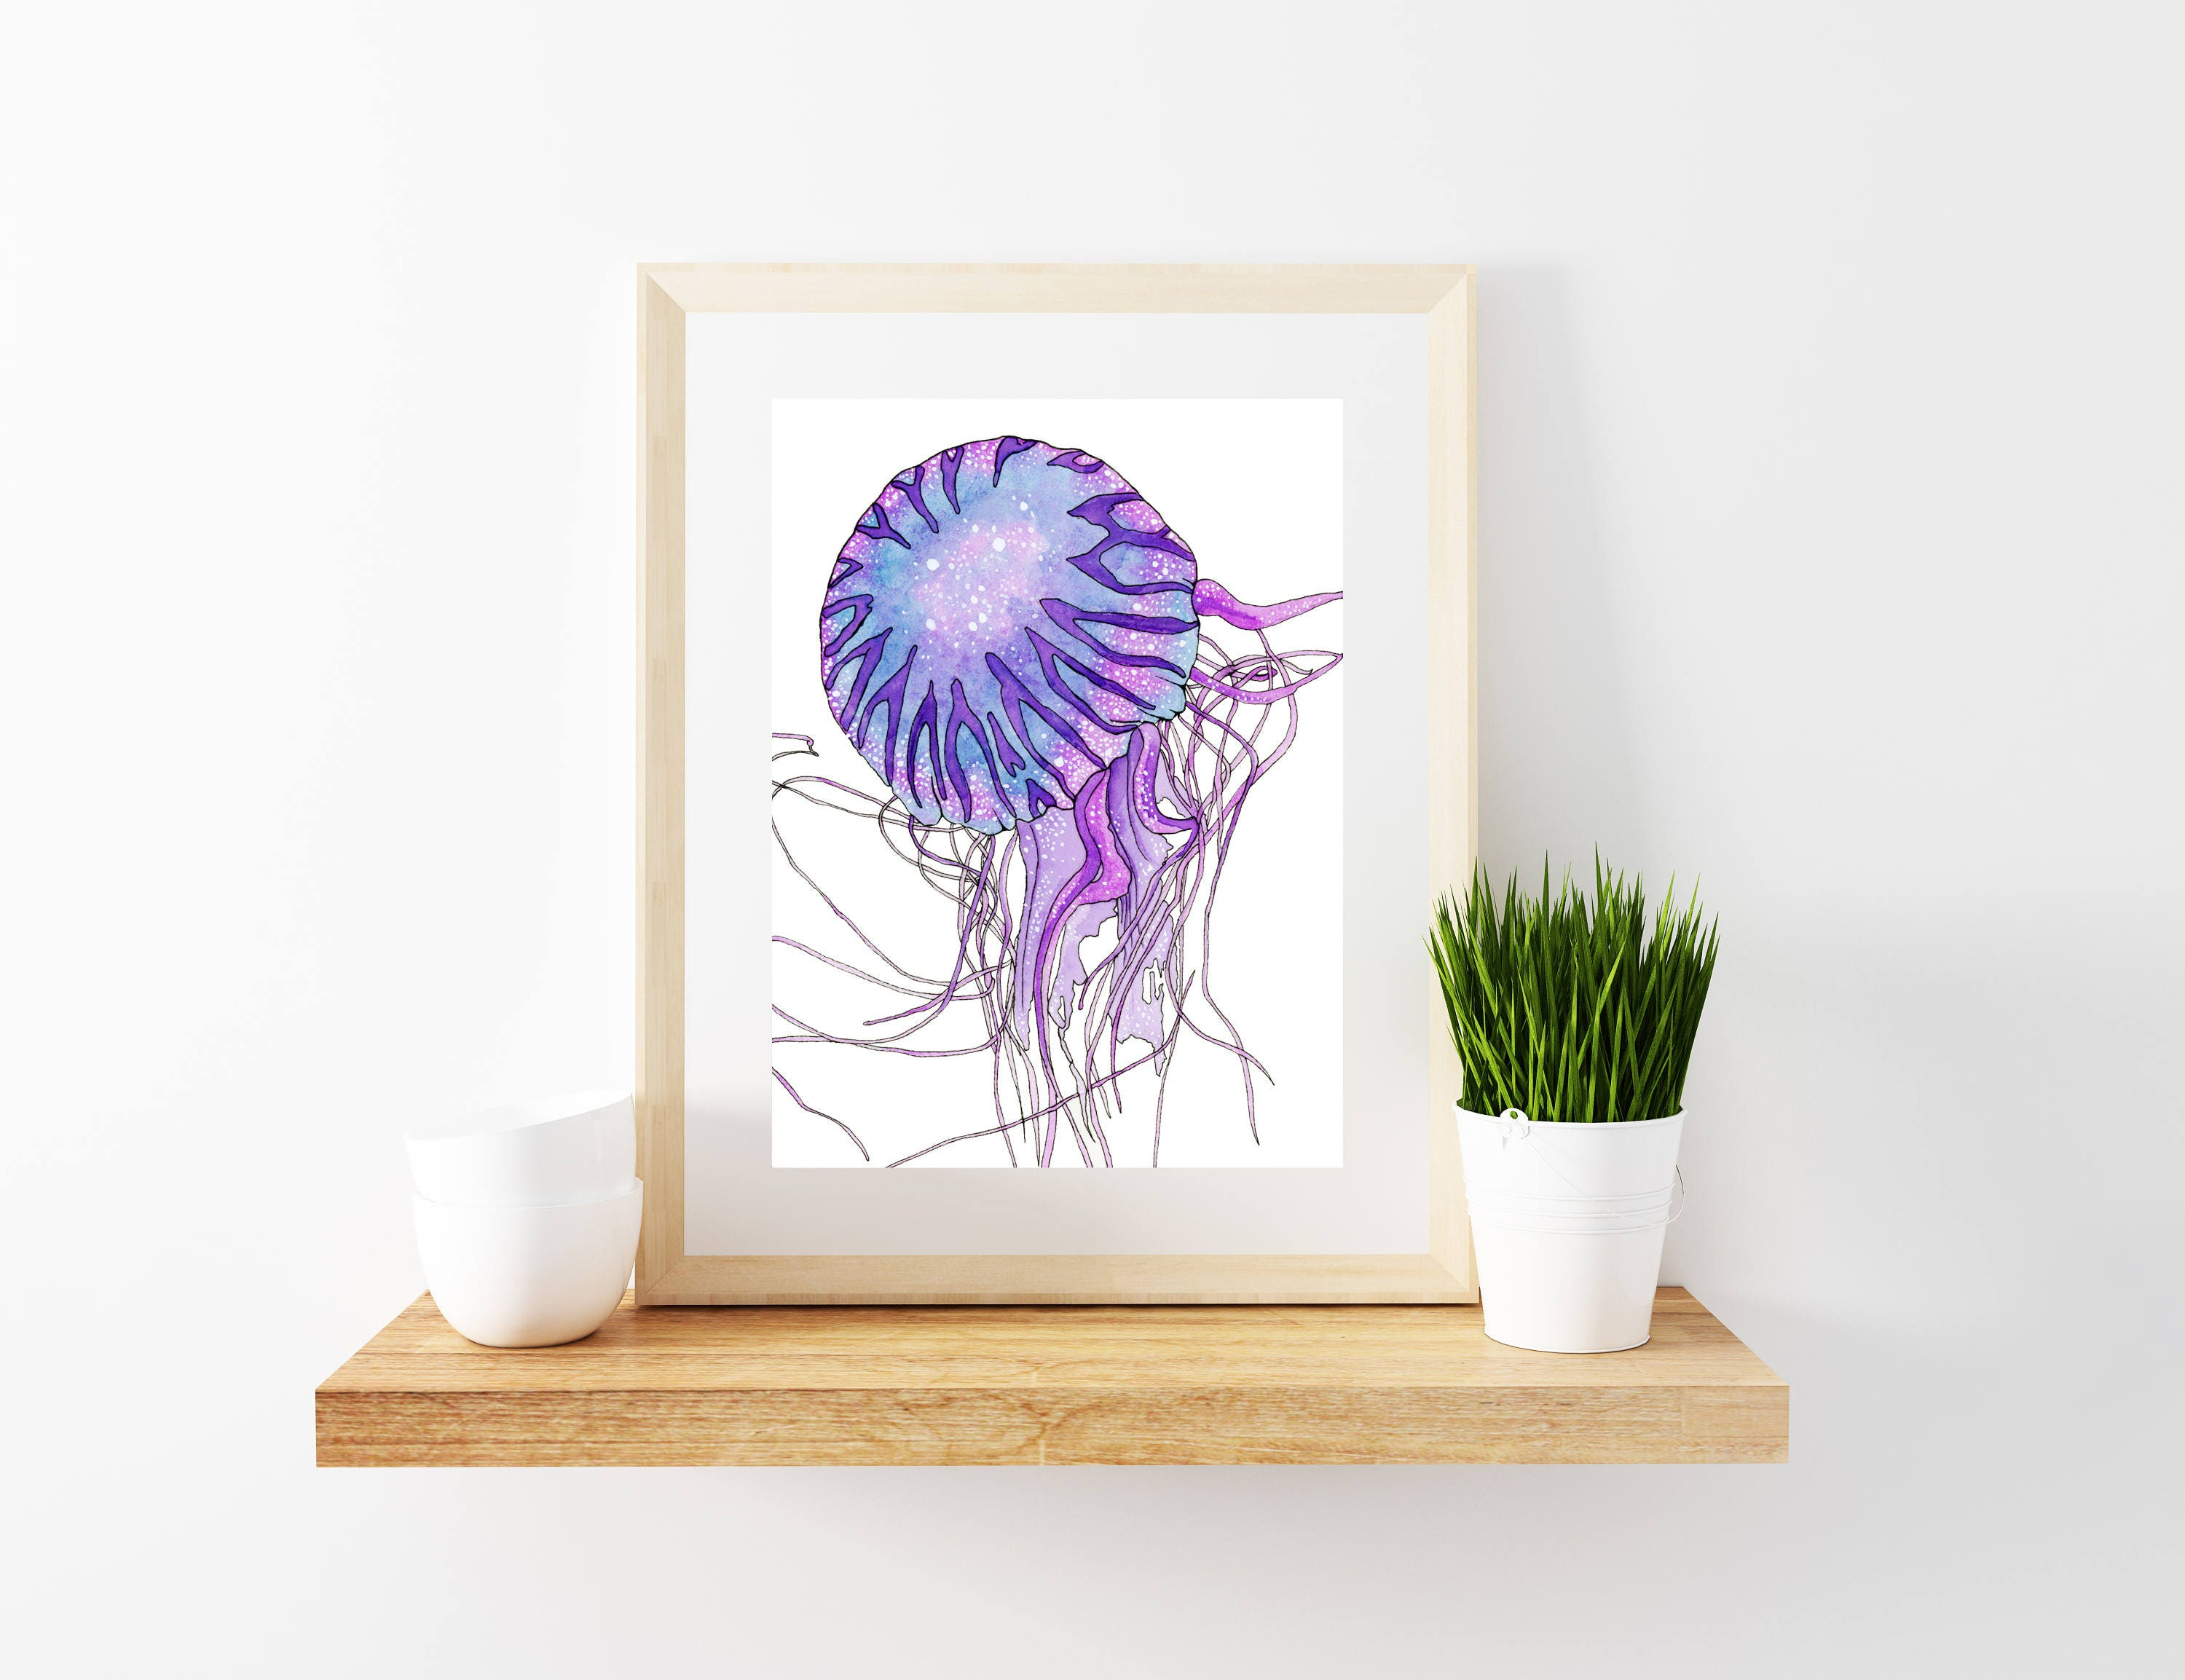 jellyfish inspired galaxy watercolor painting art prints